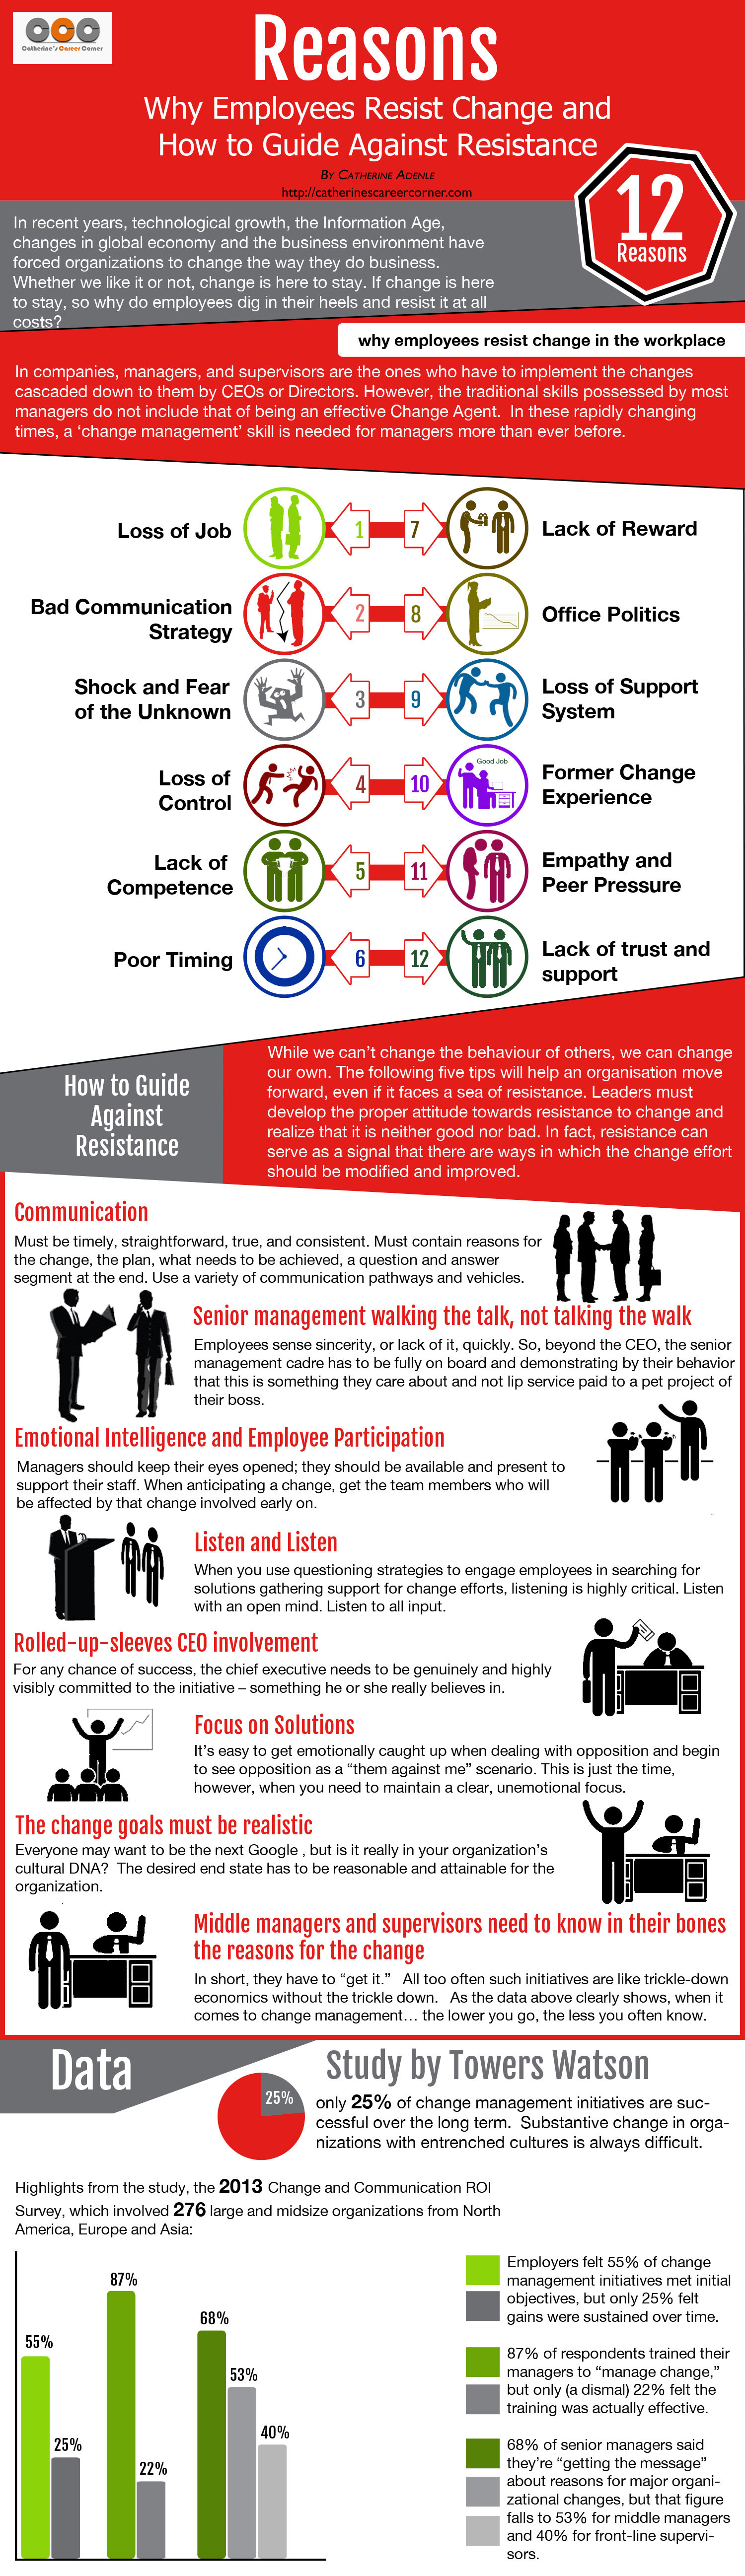 Why Employees Resist Change (Infographic)